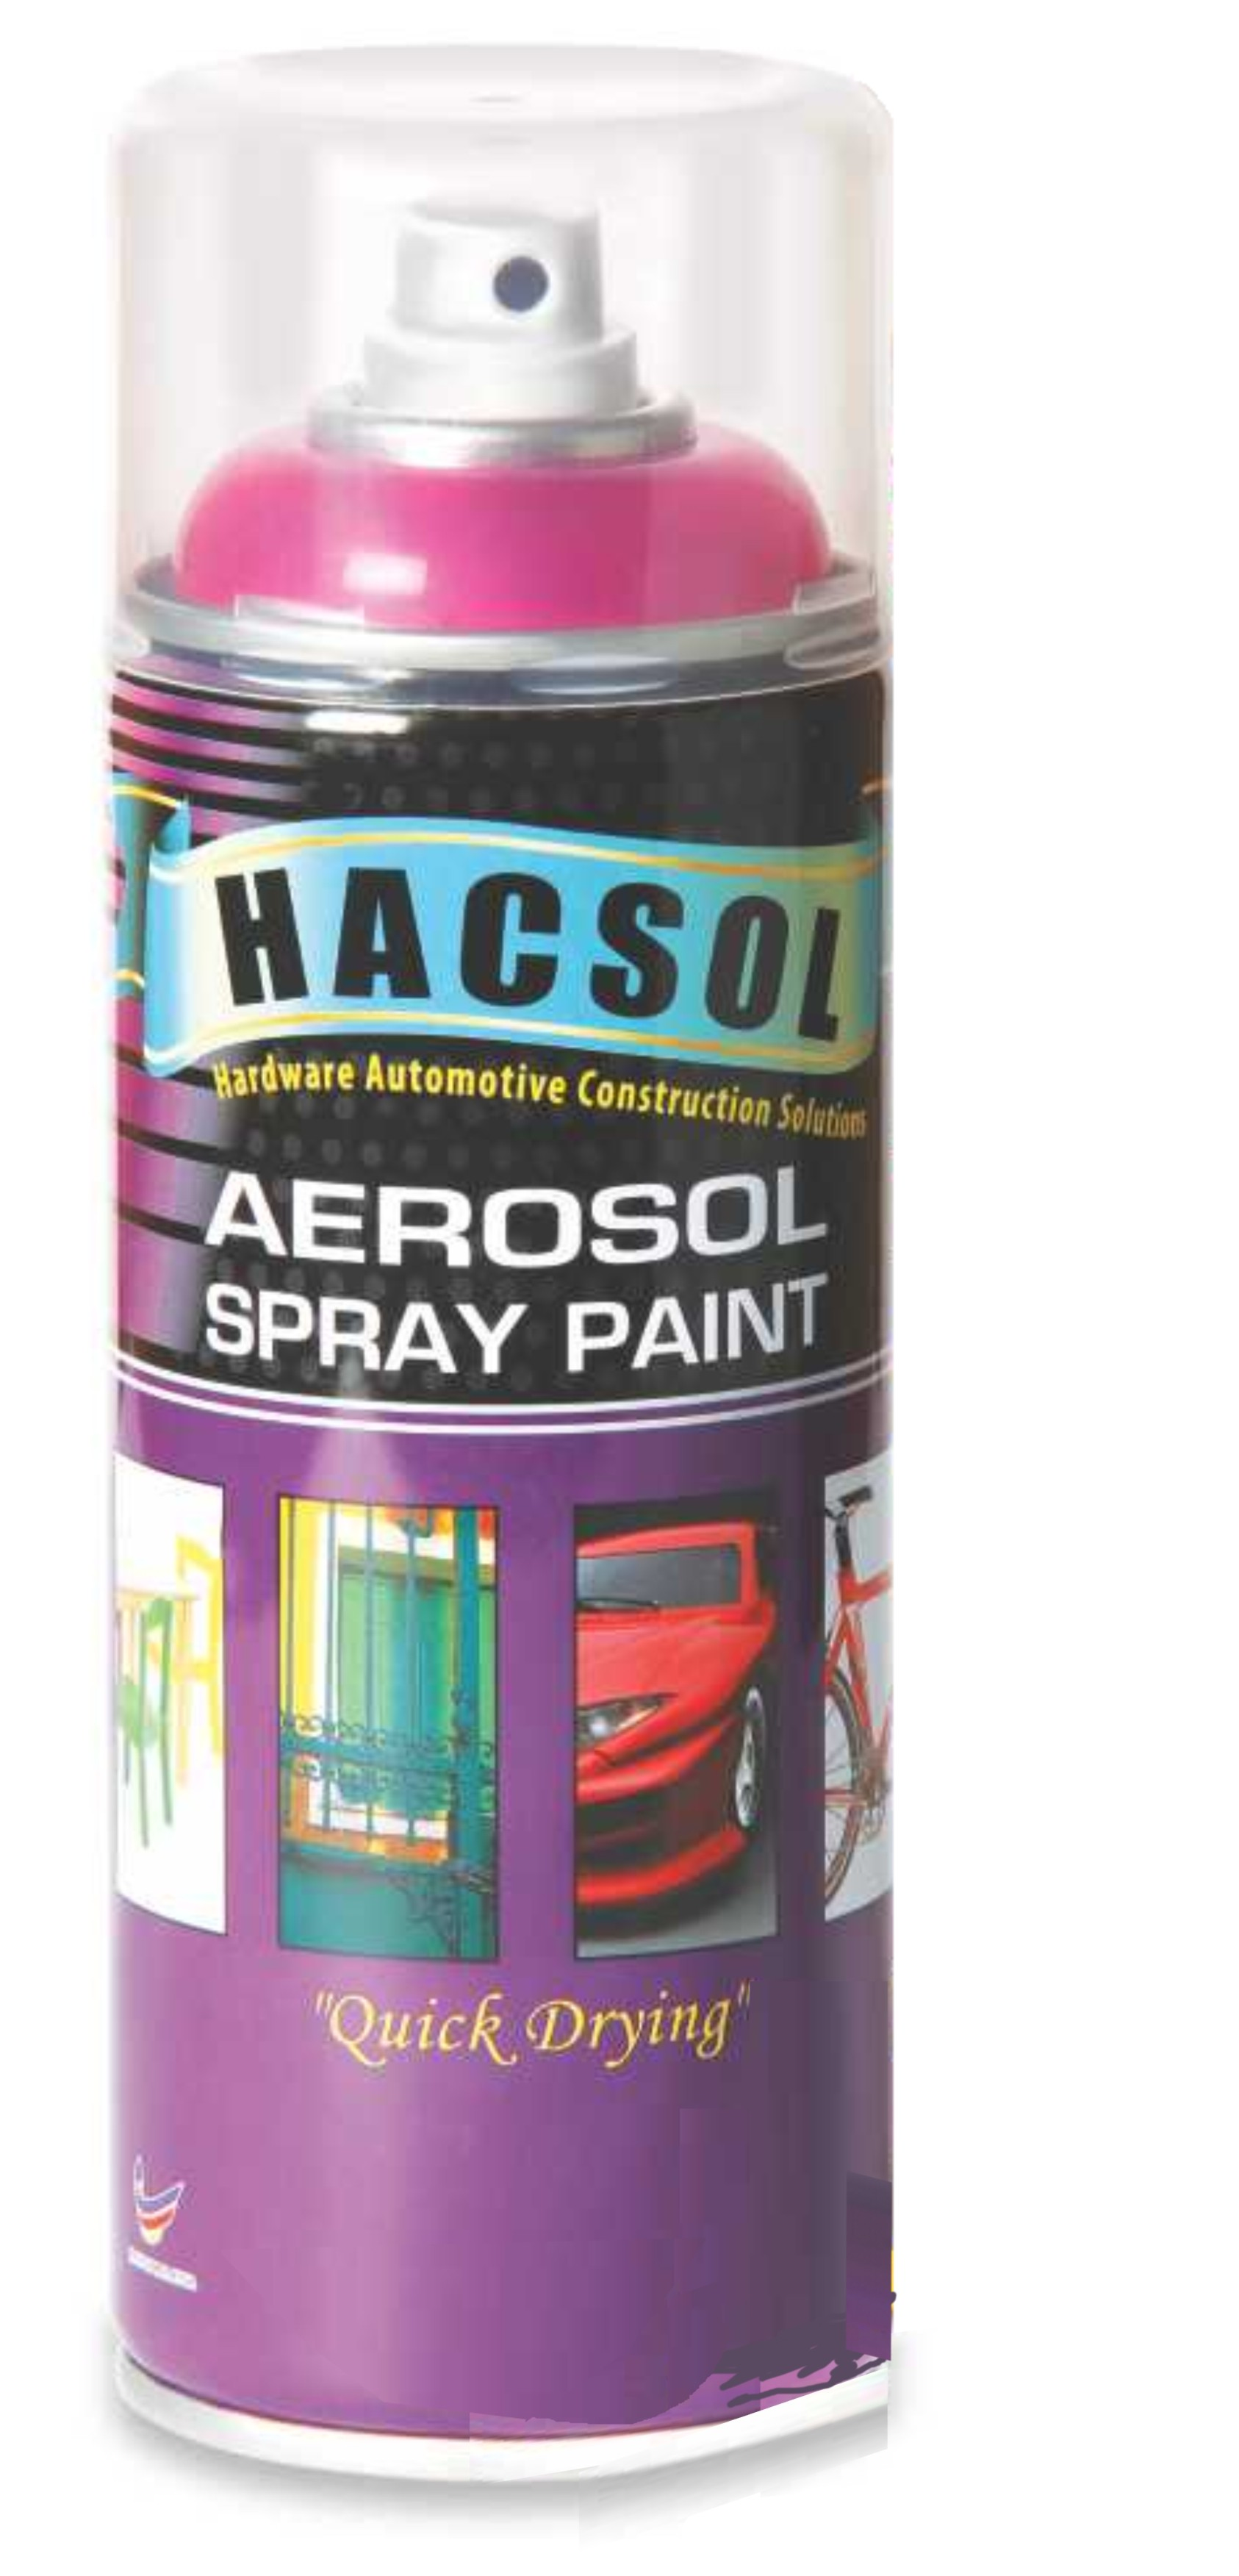 Hacsol Aerosol Spray Paints Made In Malaysia Clear Online At Best Prices In India From